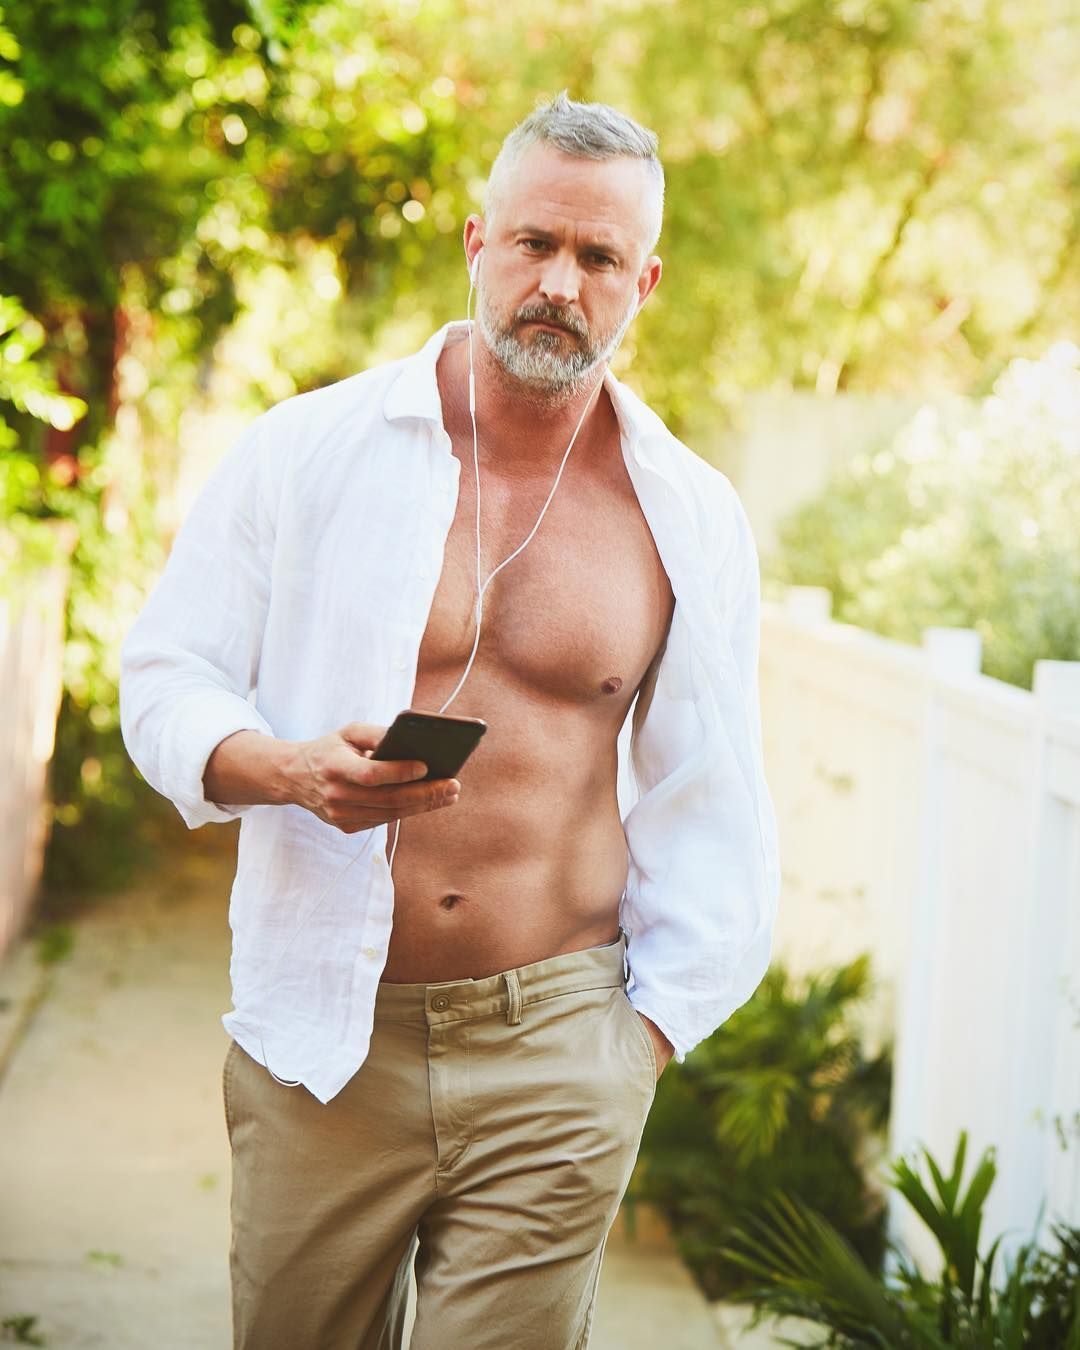 ClubSilver offers free gay dating for silverdaddies, mature men and their younger and older admirers